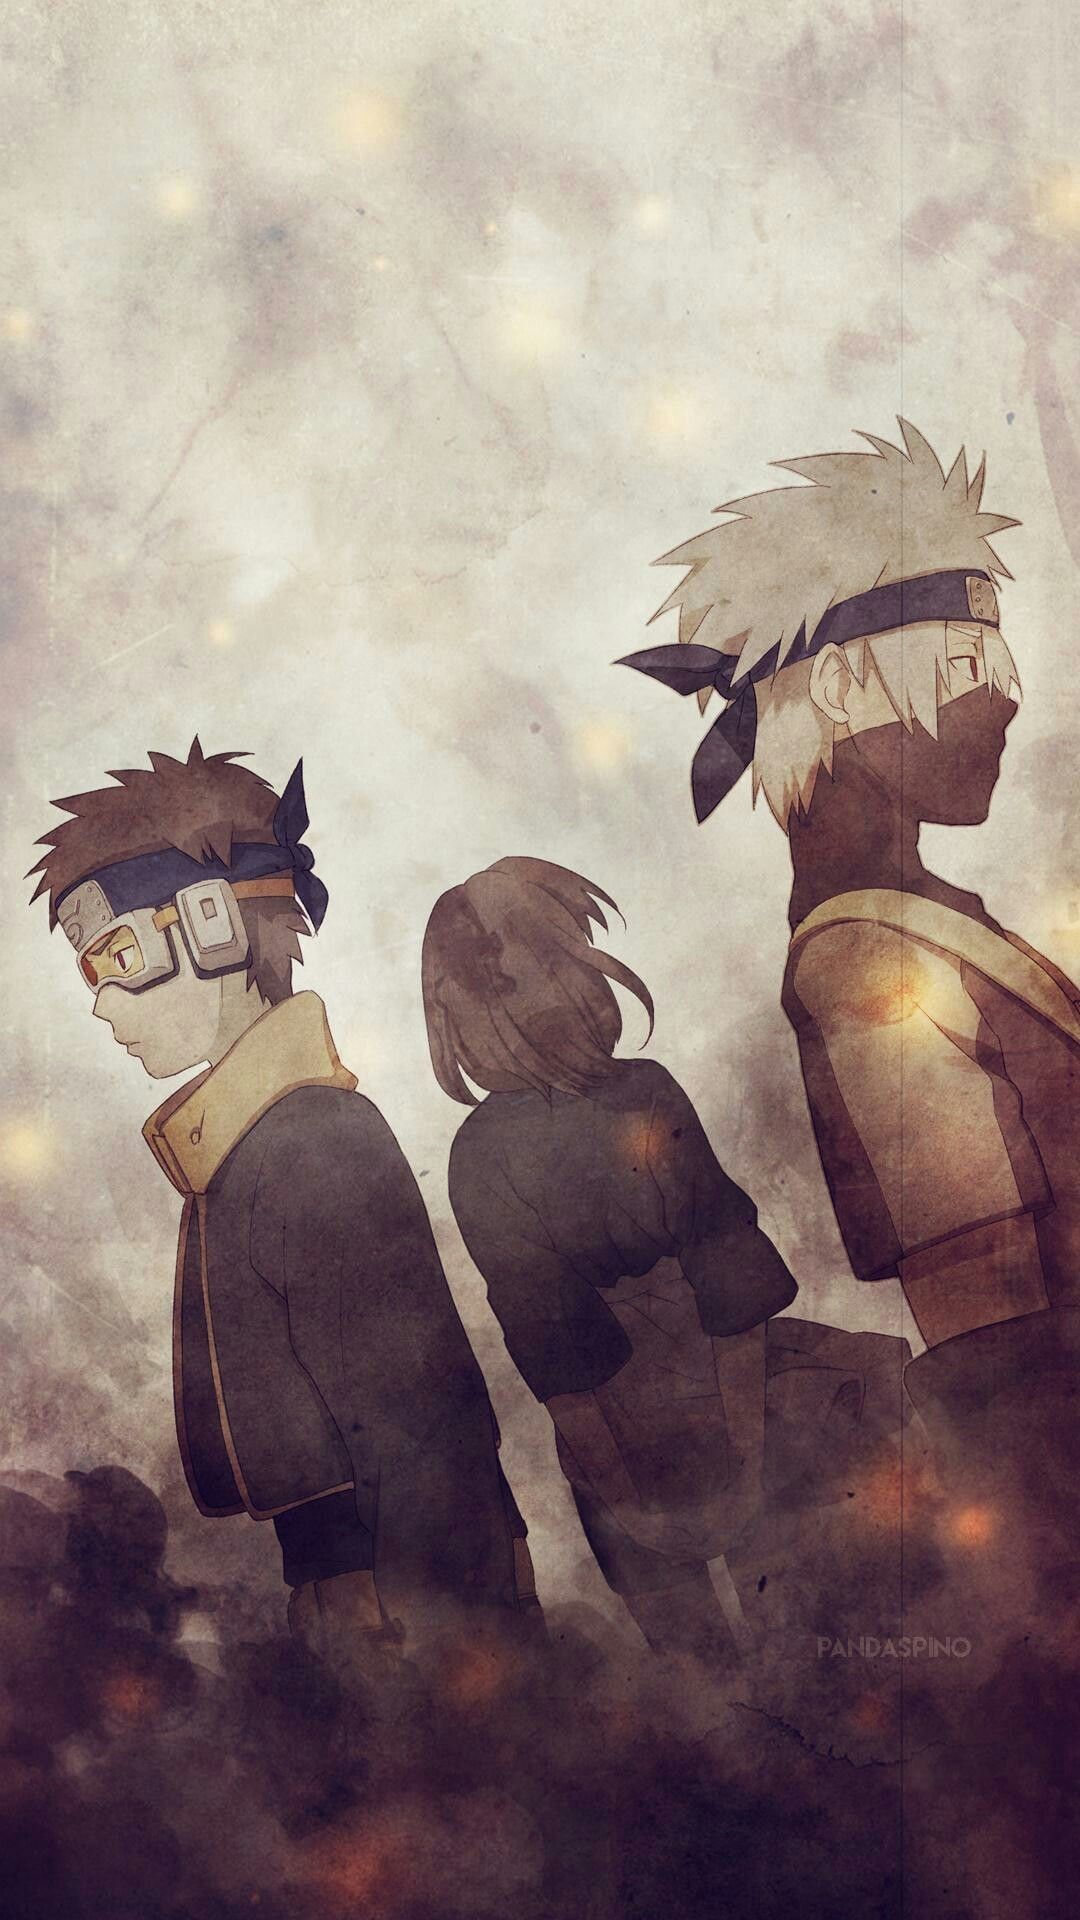 Obito And Kakashi Wallpaper Iphone 1080x1920 Wallpaper Teahub Io